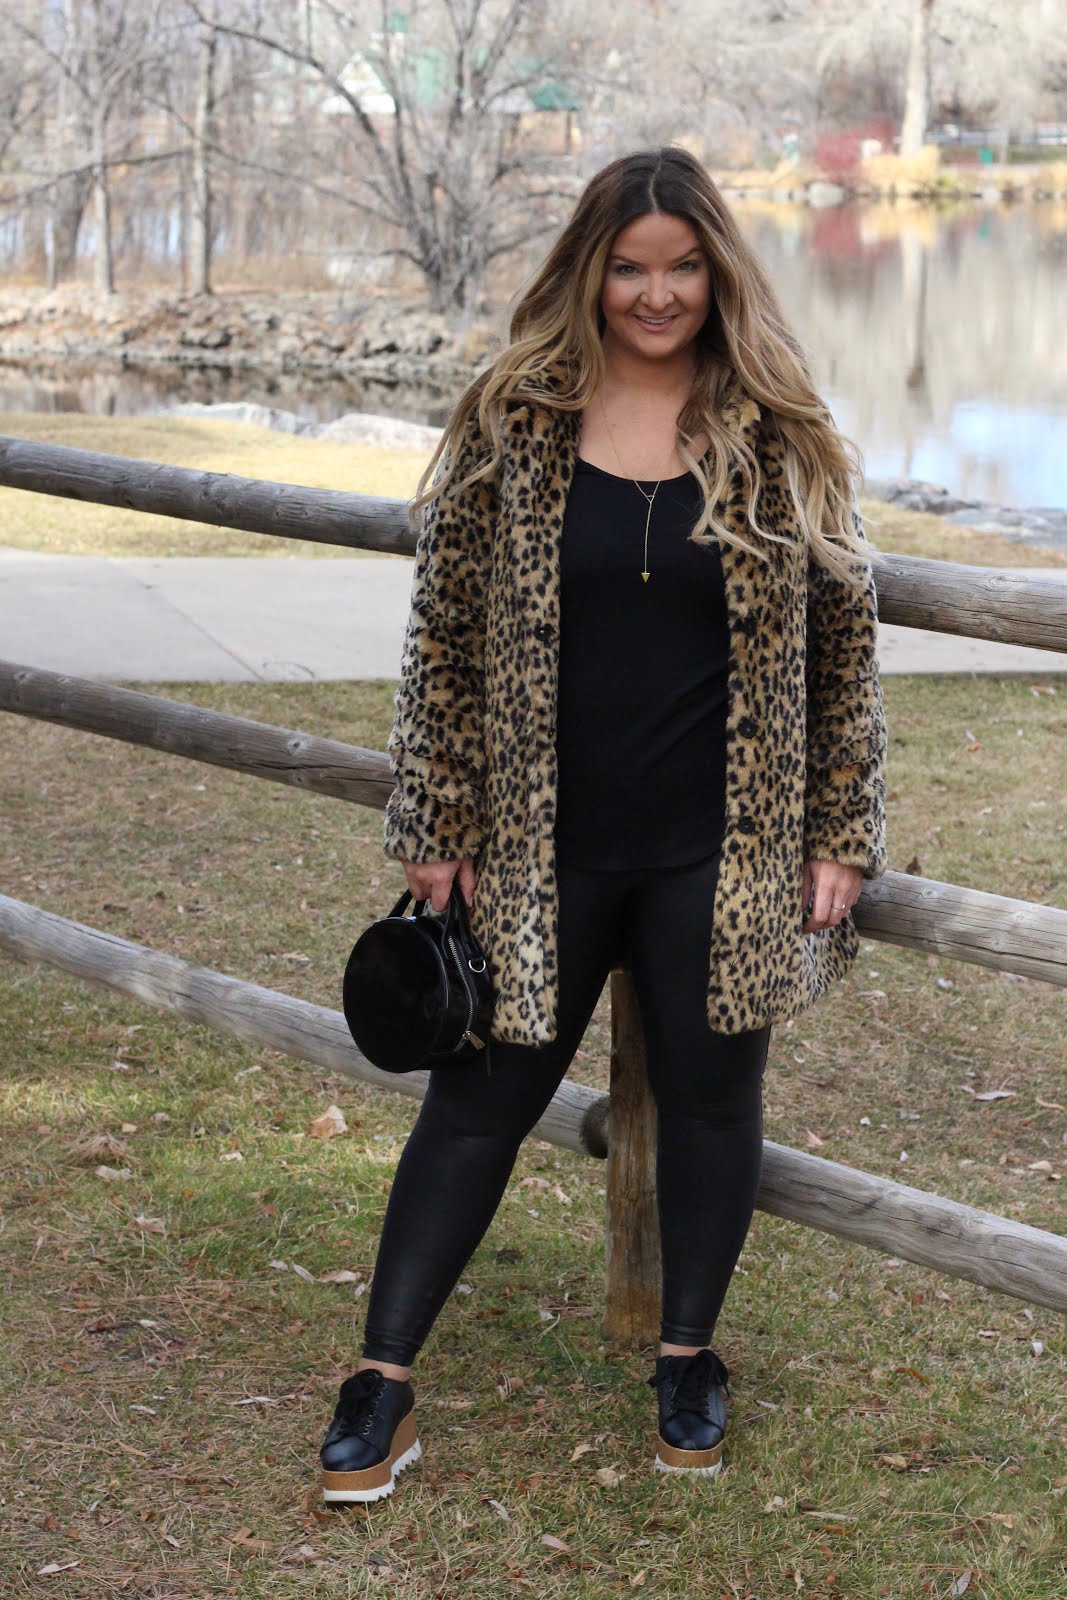 Walking into the New Year with my leopard jacket by popular Denver fashion blogger Delayna Denaye